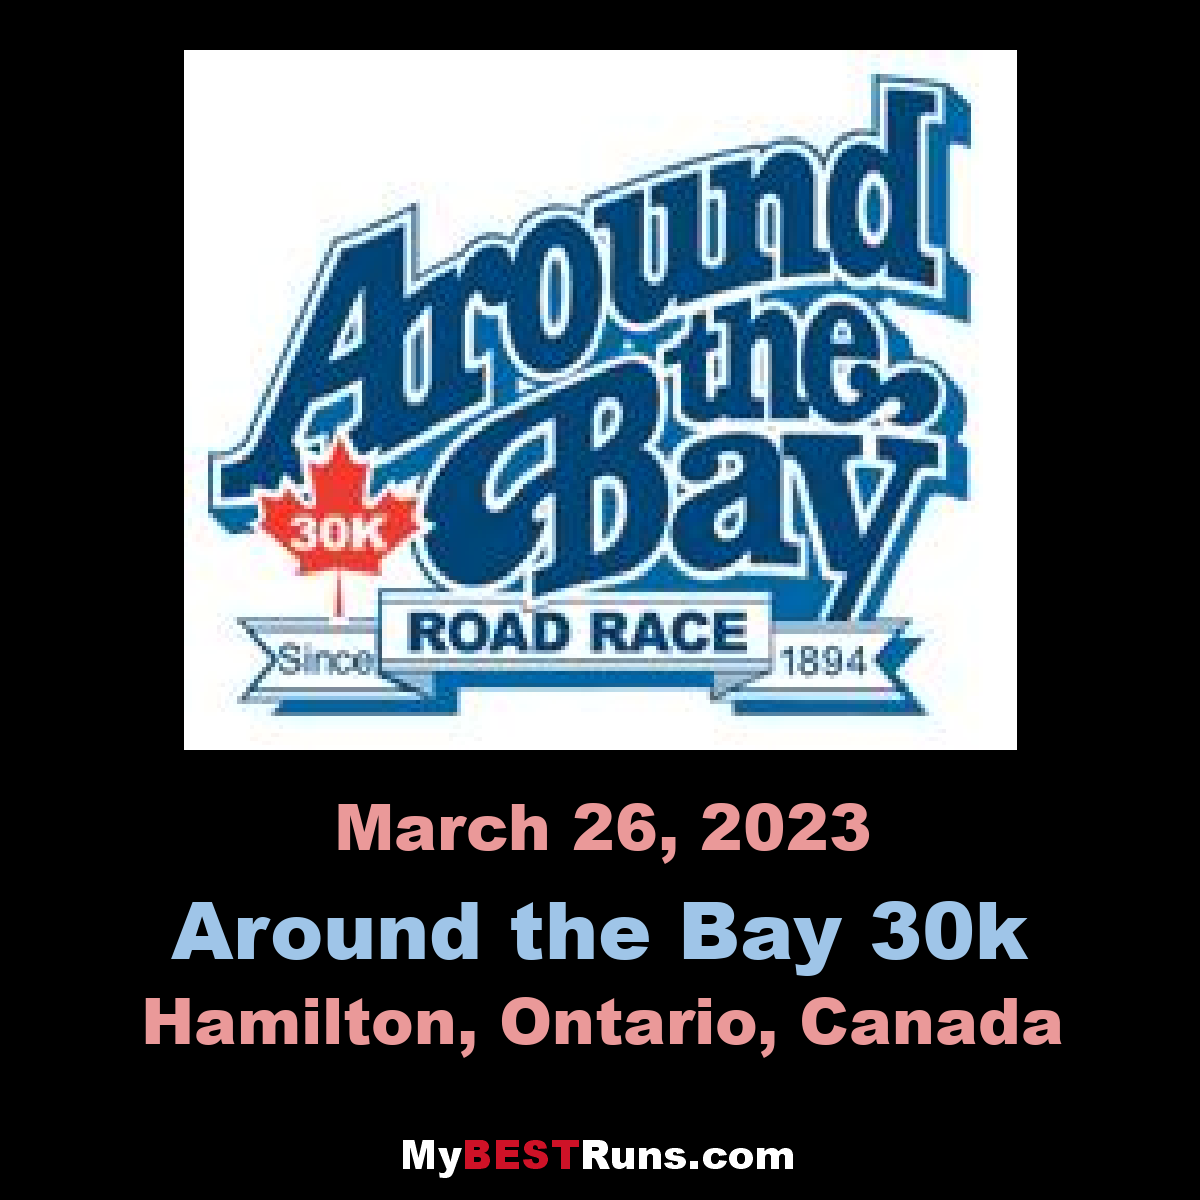 Around the Bay 30k